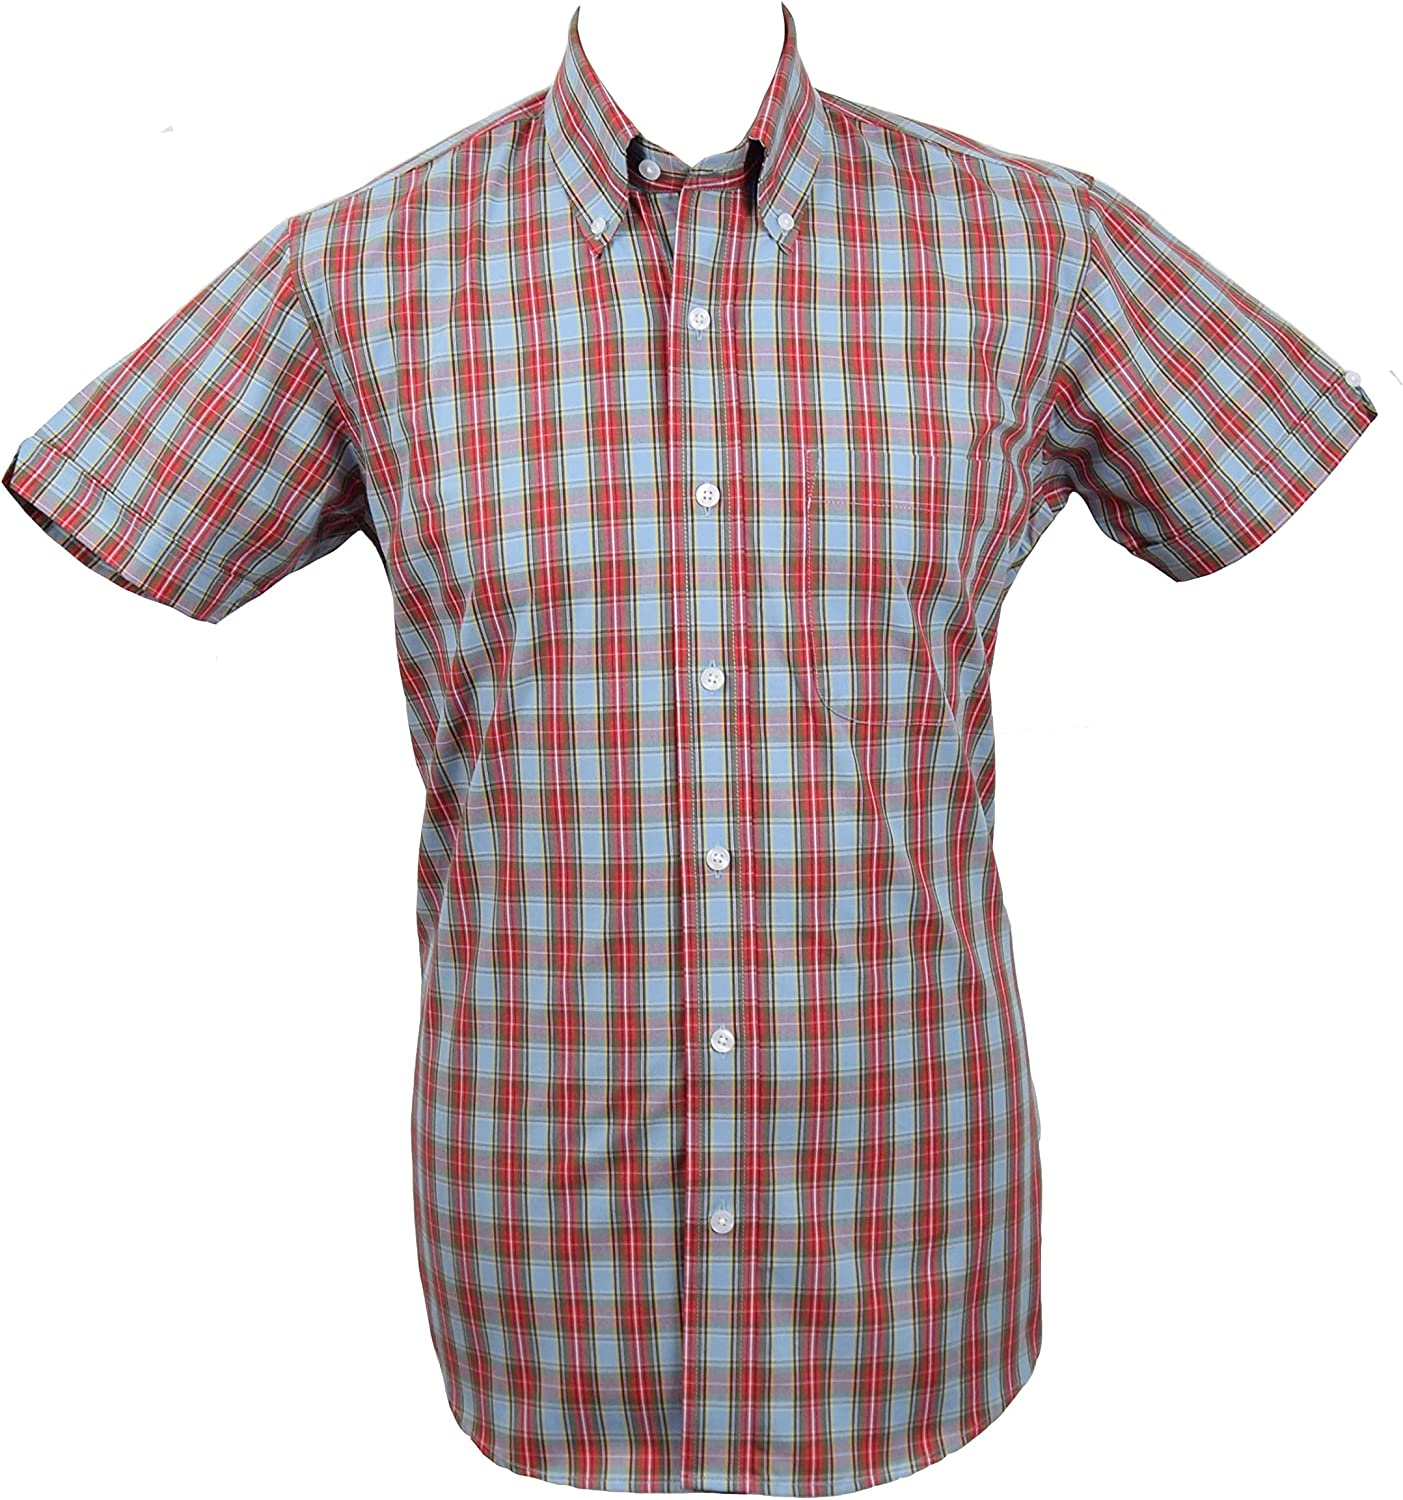 Relco Sky Blue Red Tartan Shirt Sizes Medium 3xl Available Large 40 42 Amazon Co Uk Clothing